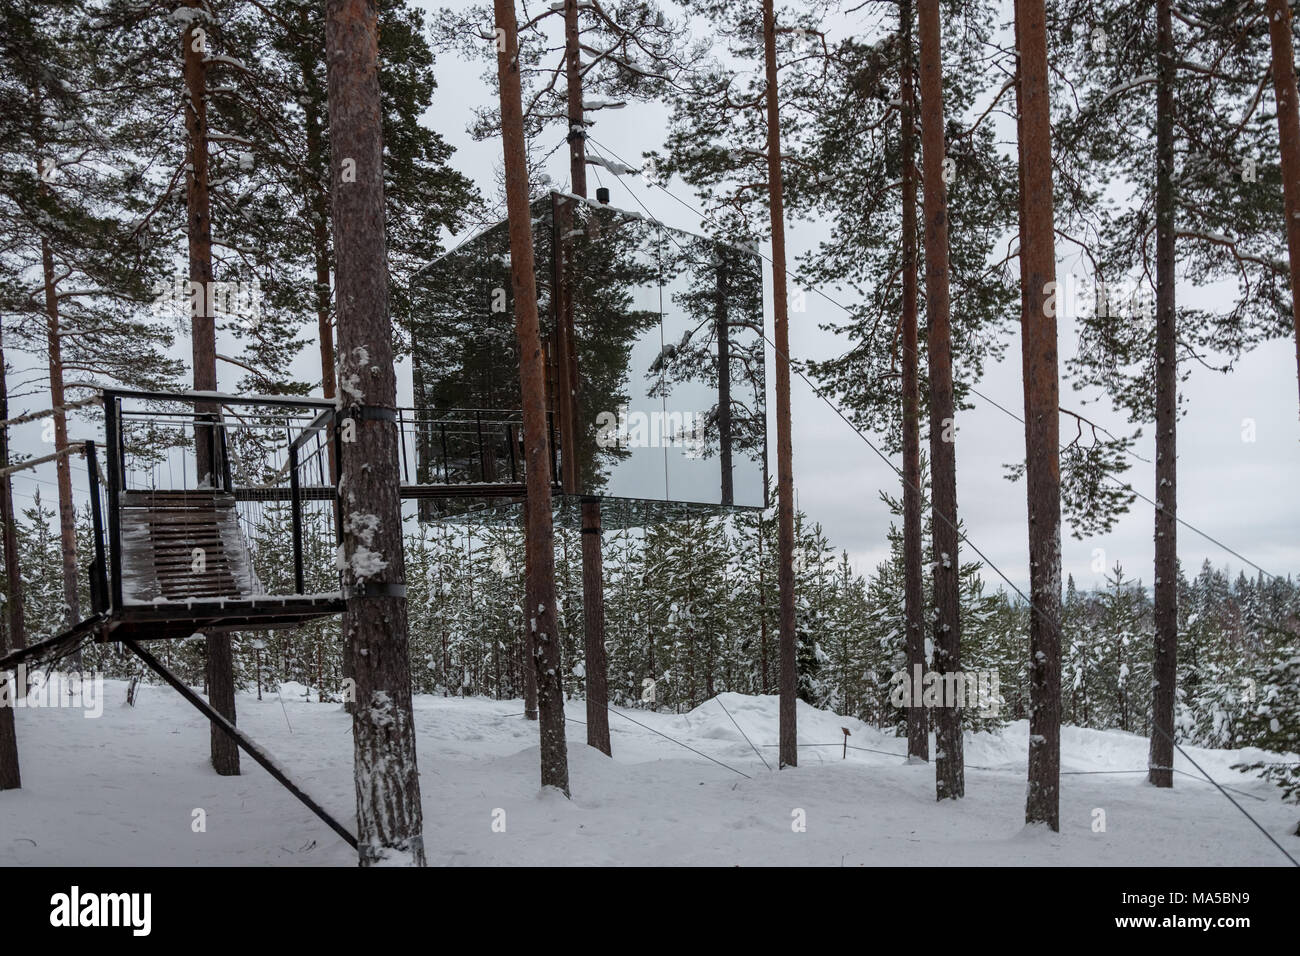 Tree Hotel In Harads Sweden Stock Photo 178369221 Alamy